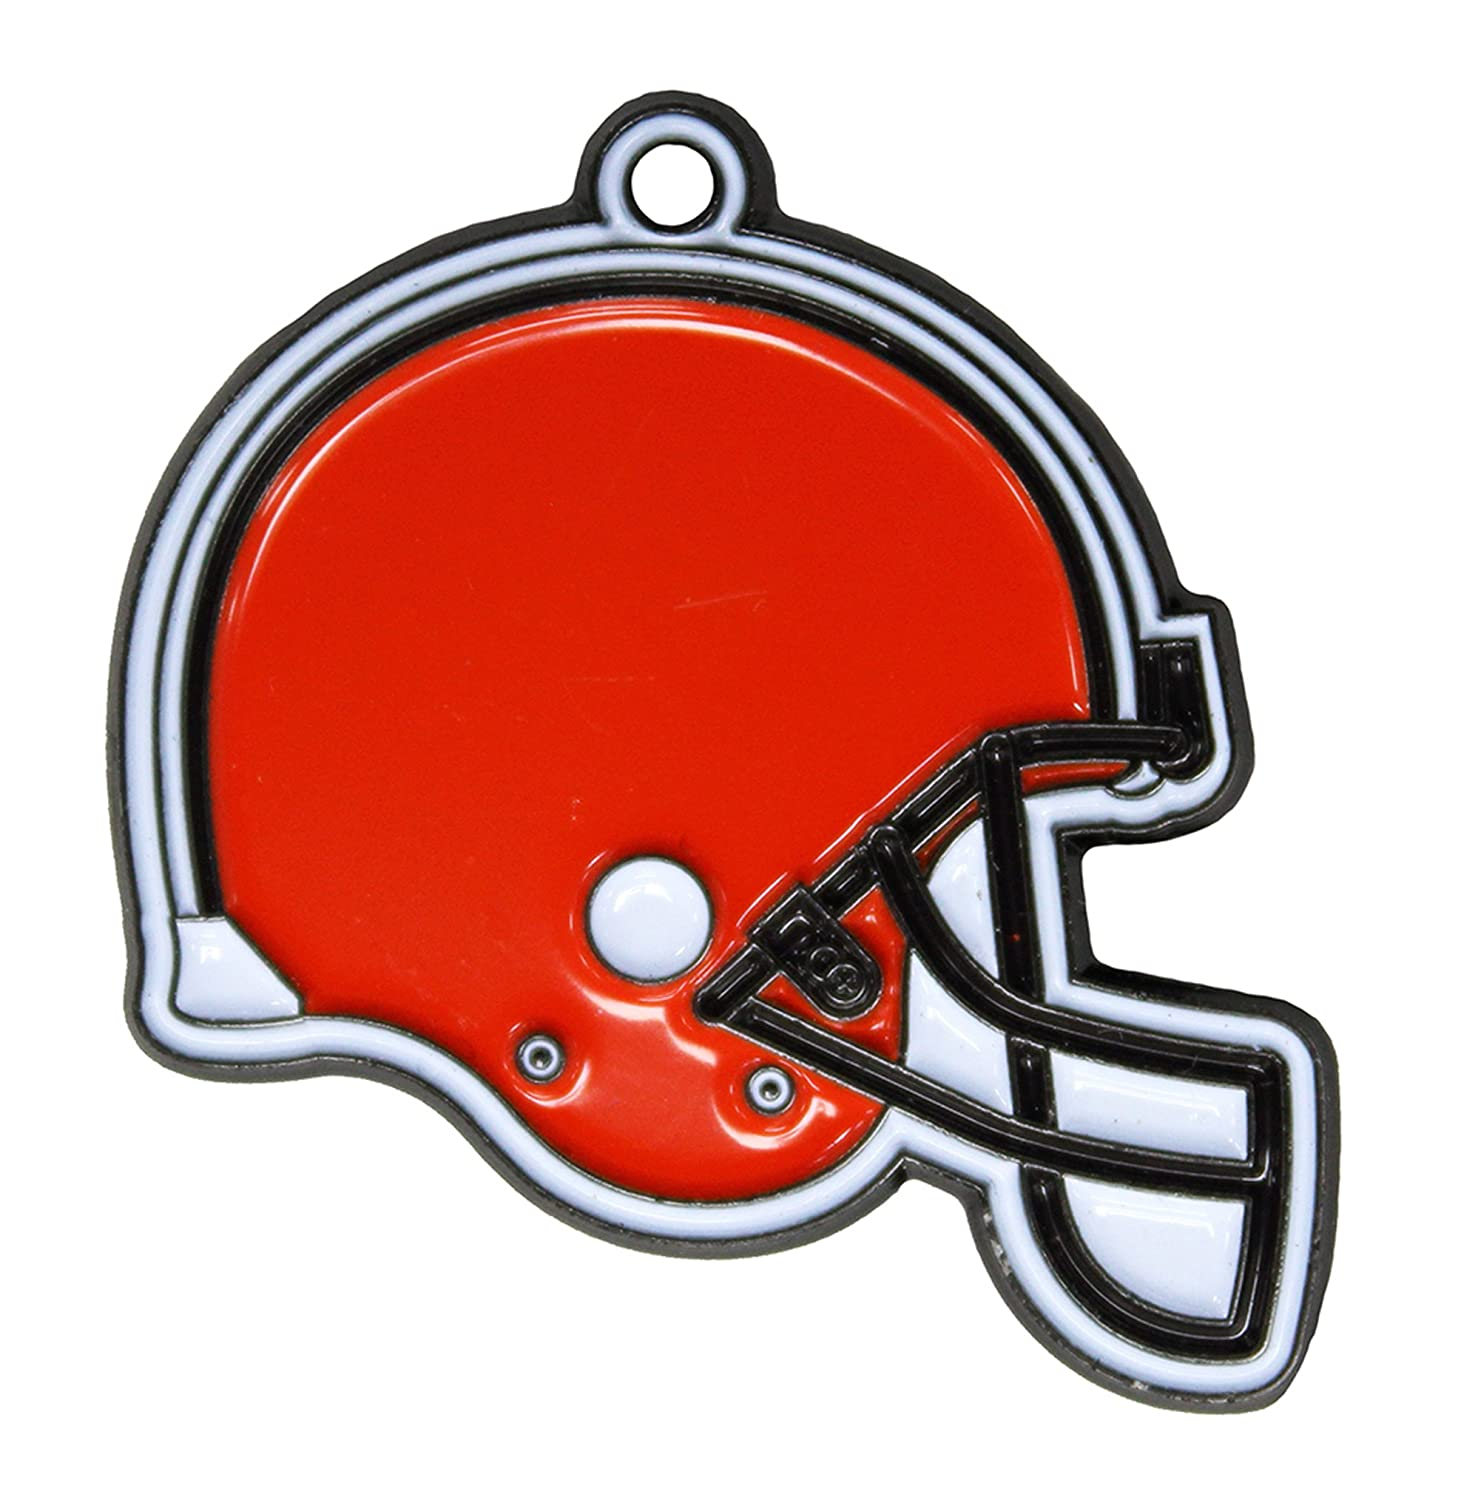 NFL Dog TAG Cleveland Browns Smart Pet Tracking Tag. Best Retrieval System for Dogs, Cats or Army Tag. Any Object You'd Like to Predect